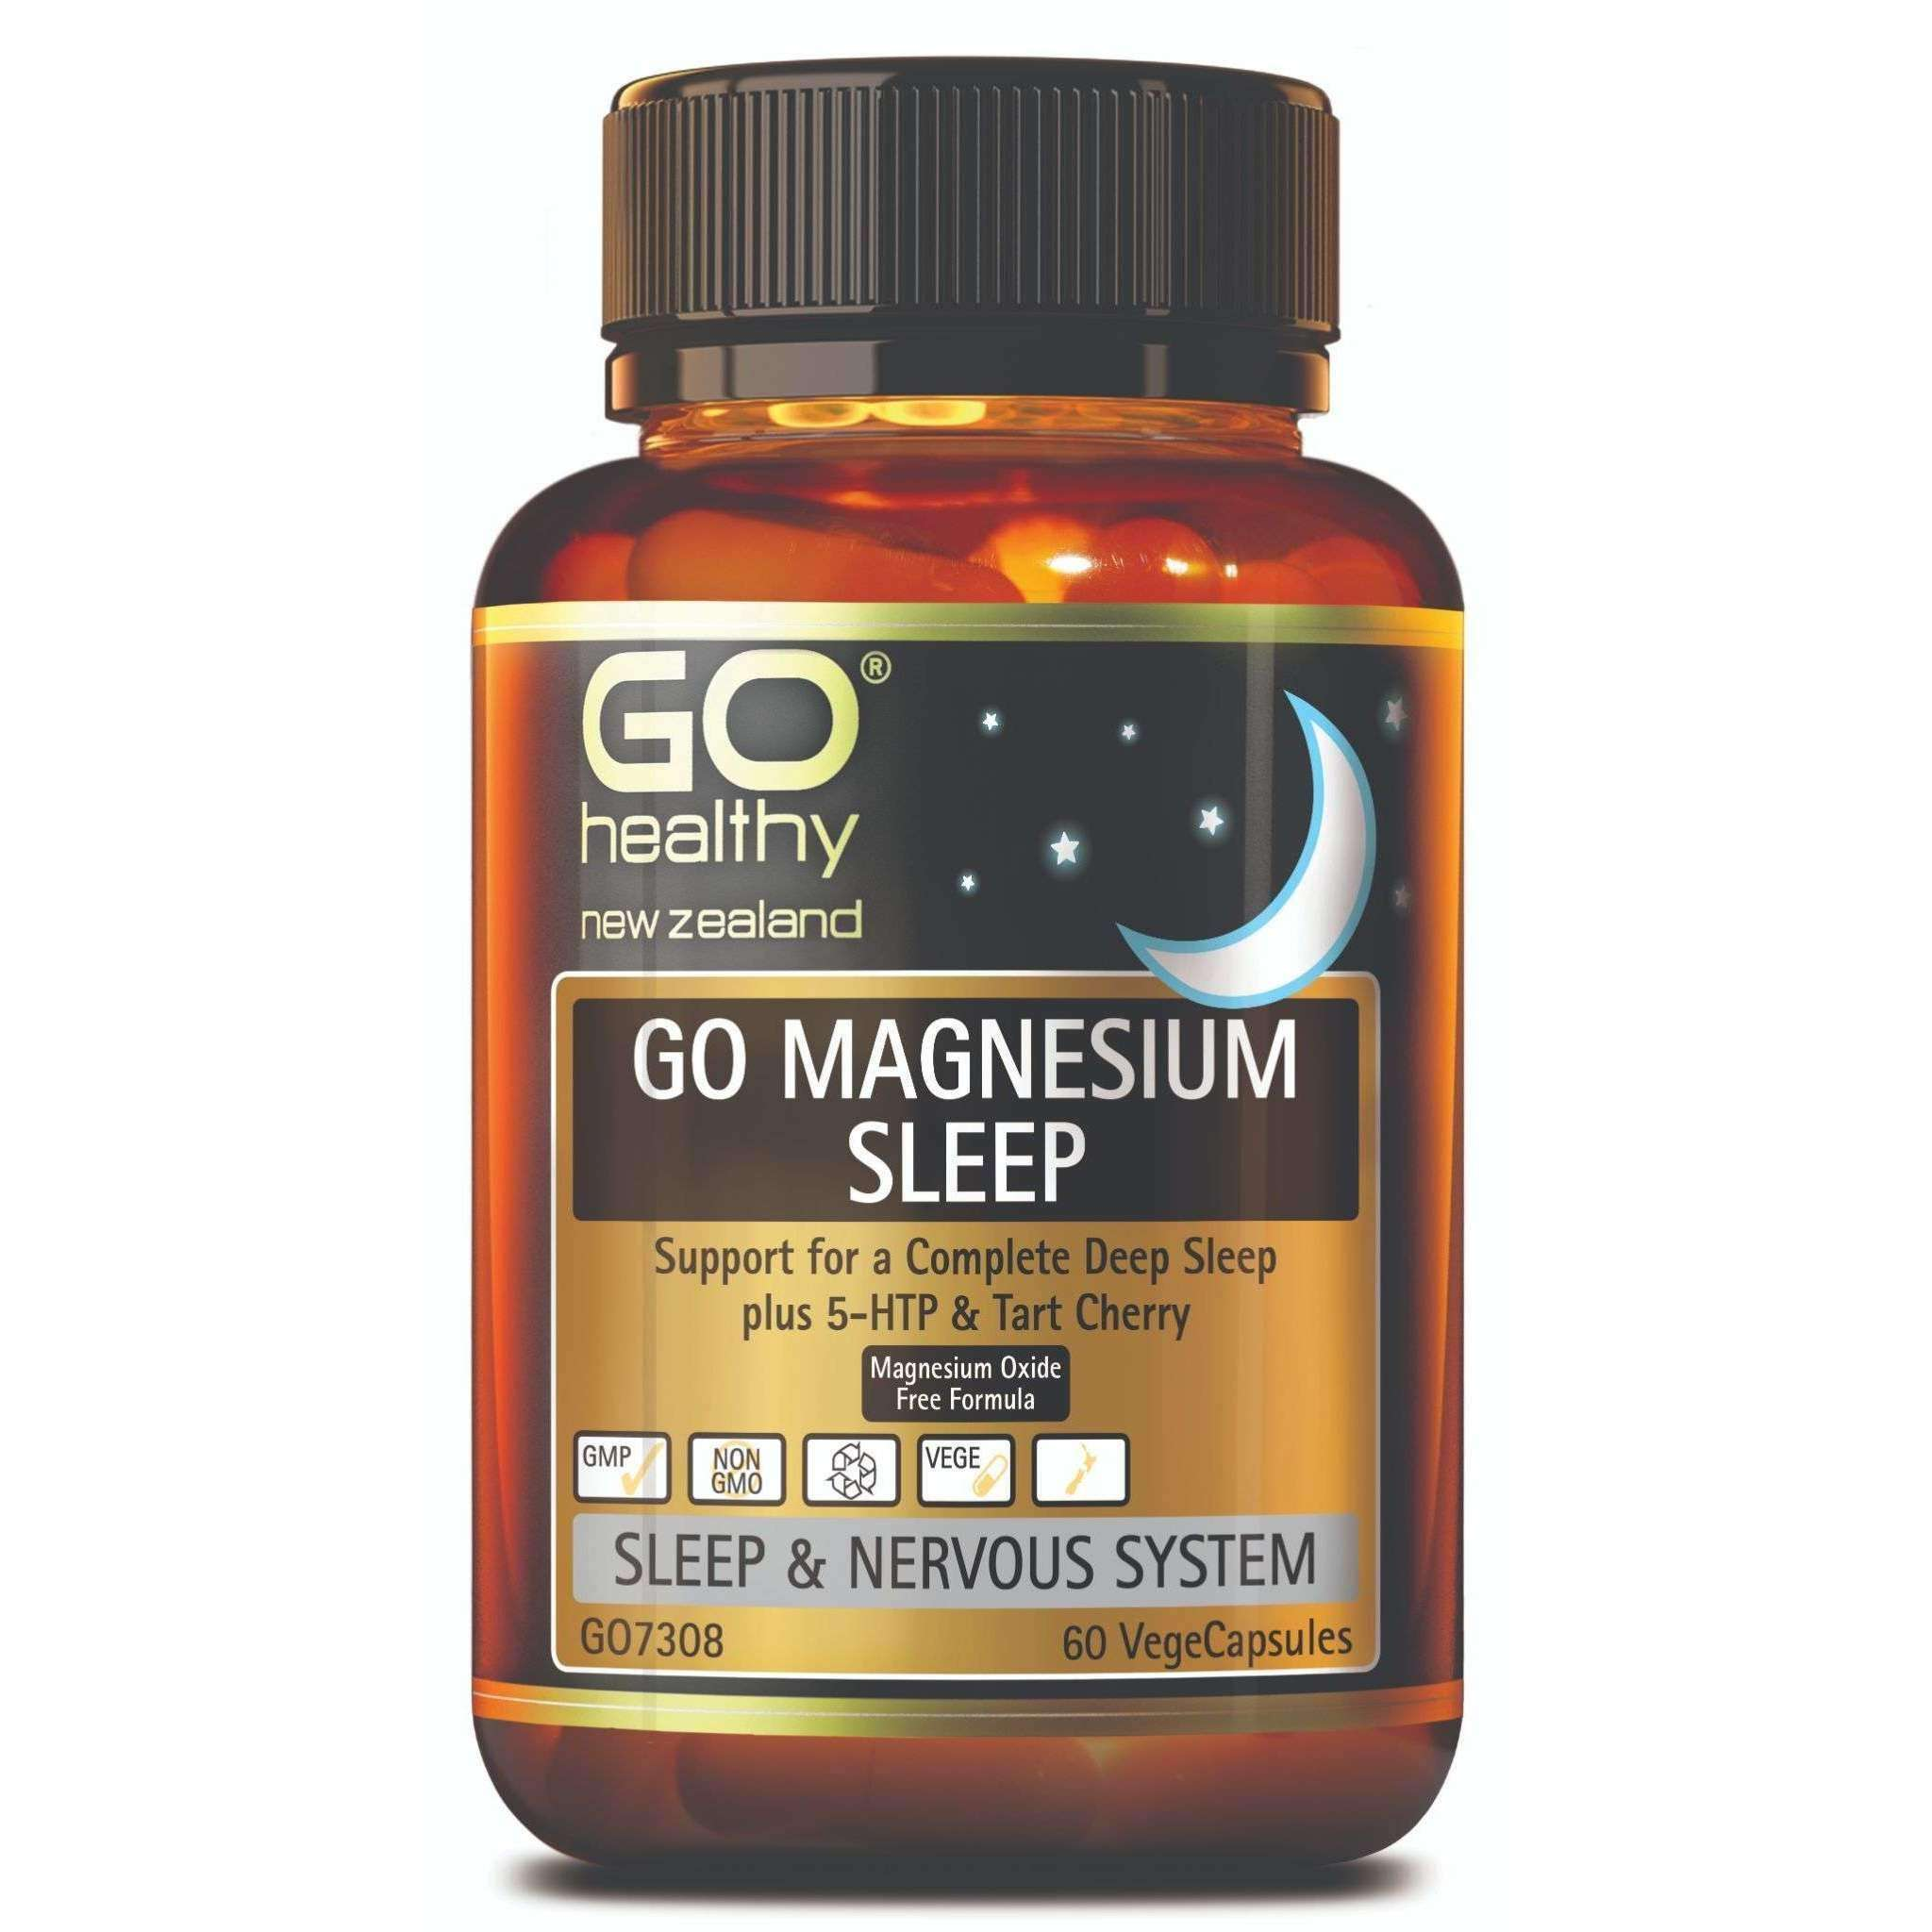 Go Healthy Go Magnesium Sleep